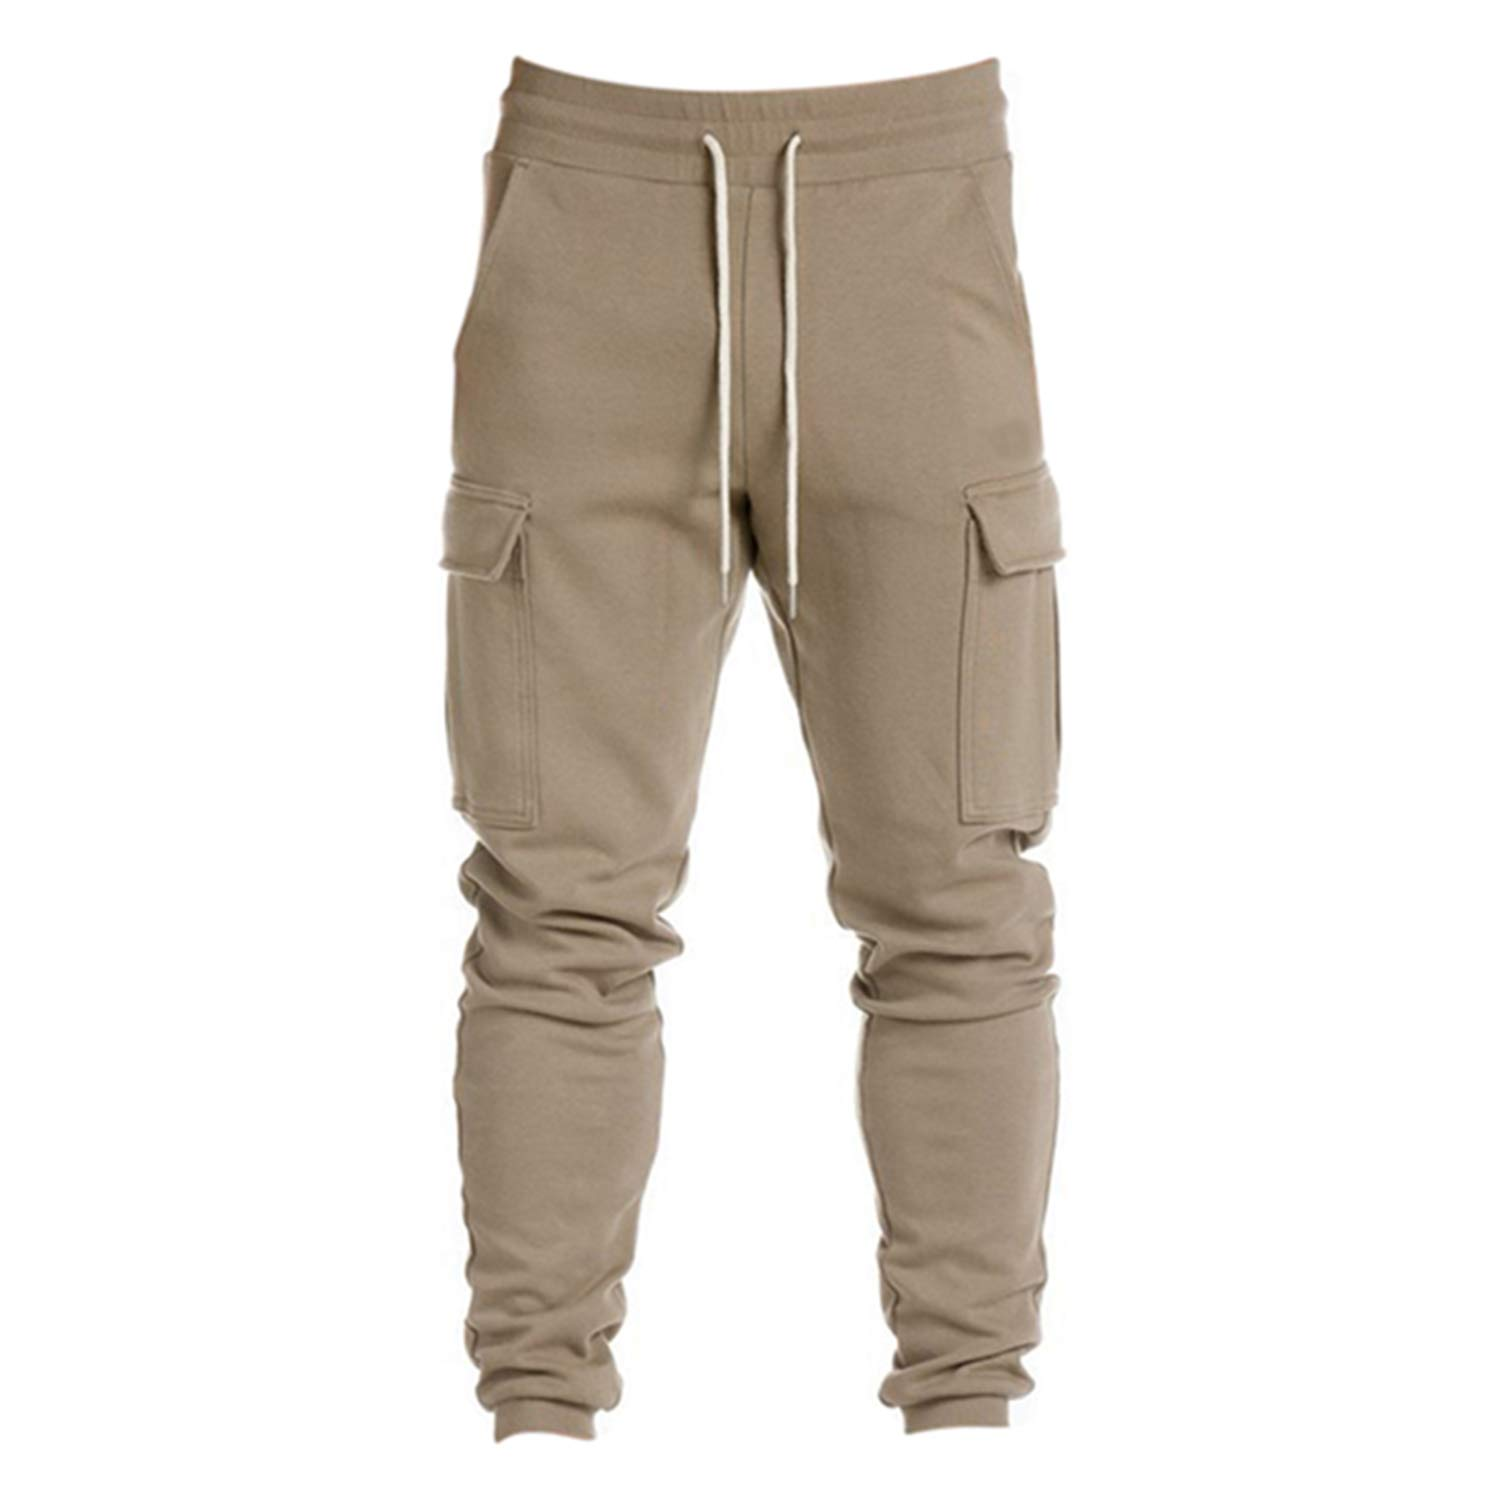 Plus Size Military Gyms Sweatpants Big Pockets Fitness Long Men's Trousers